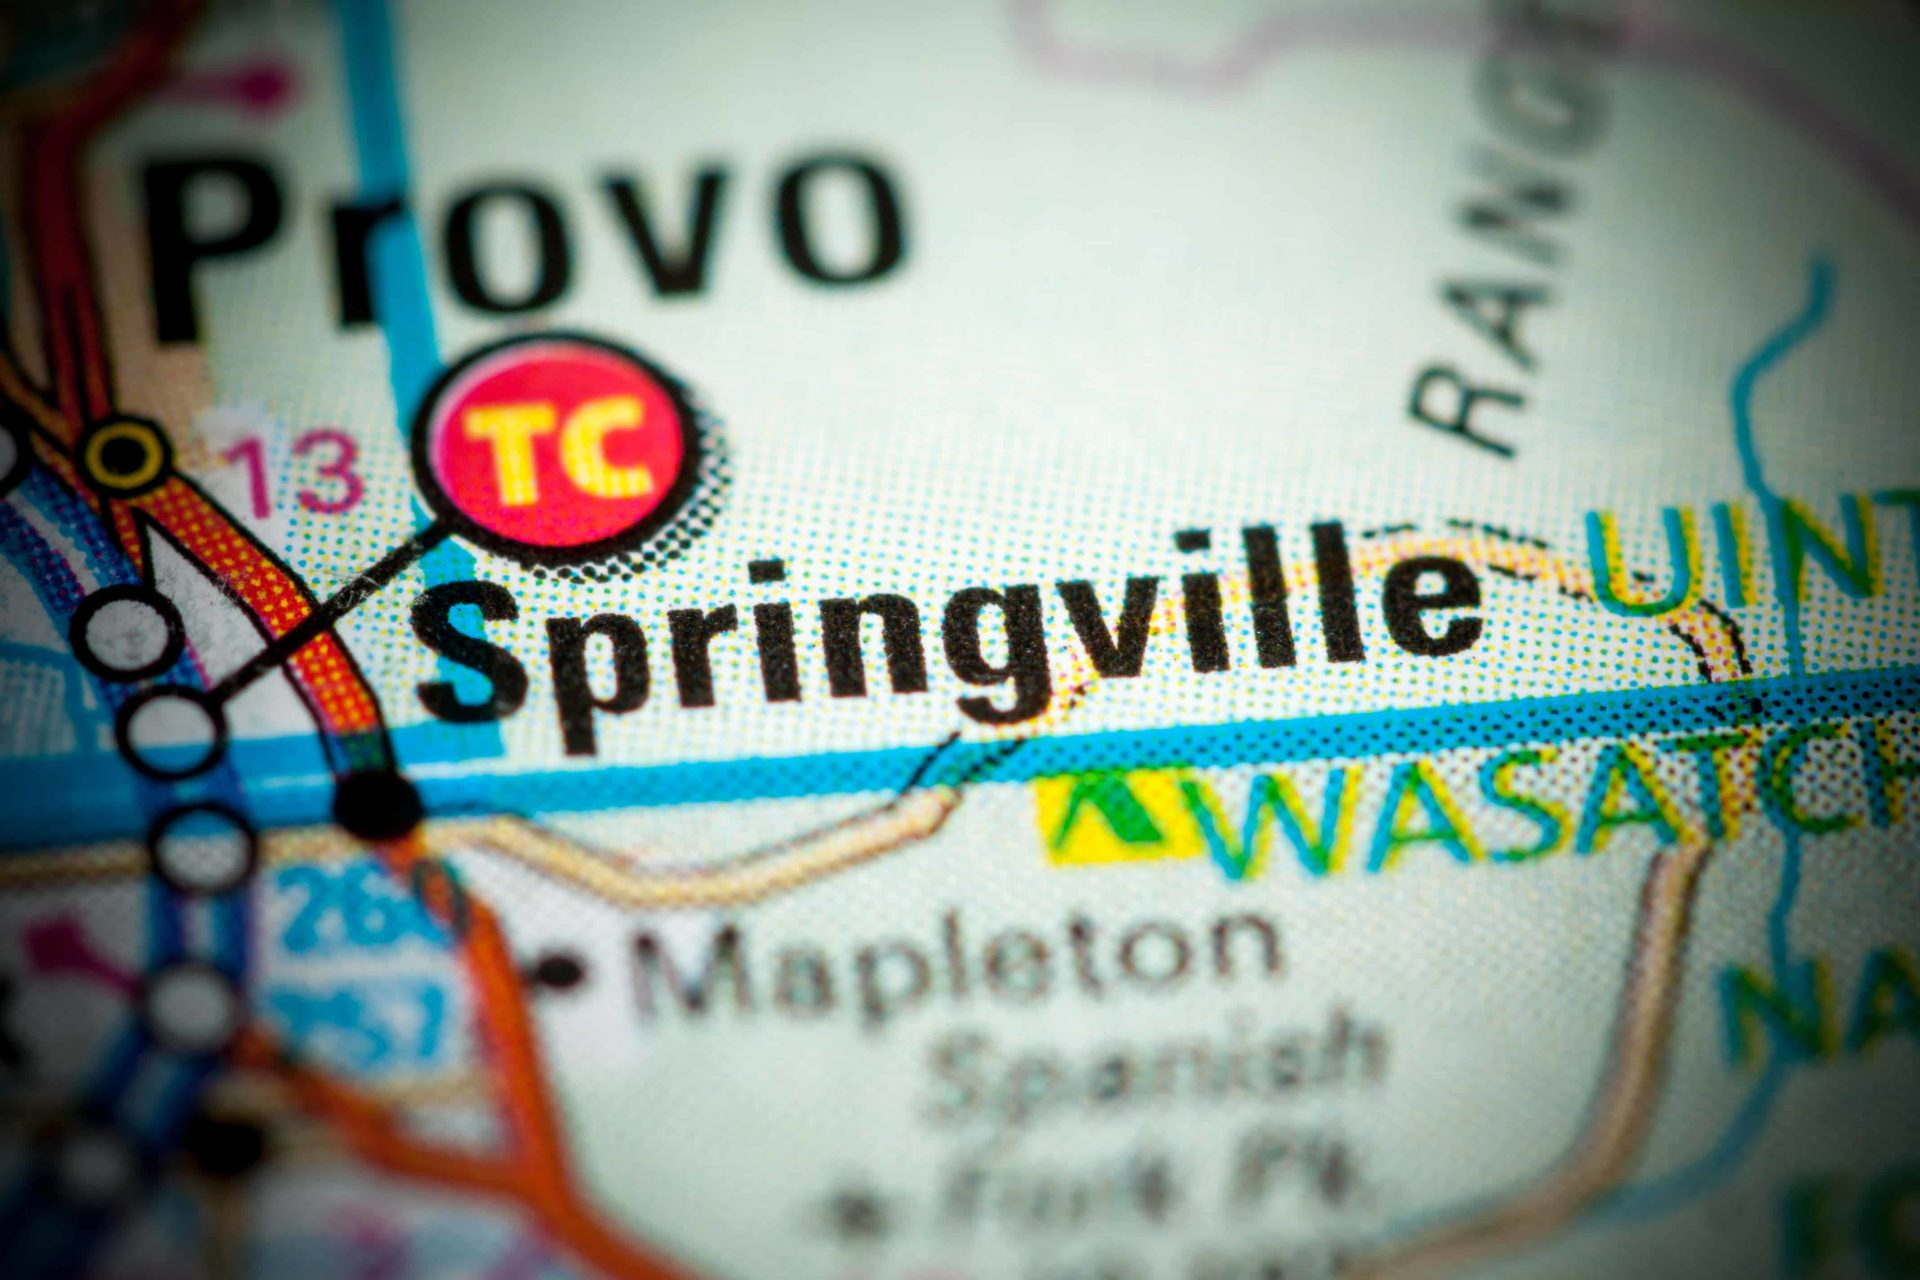 Springville Movers Wasatch Moving Company Springville Ut Moving Company